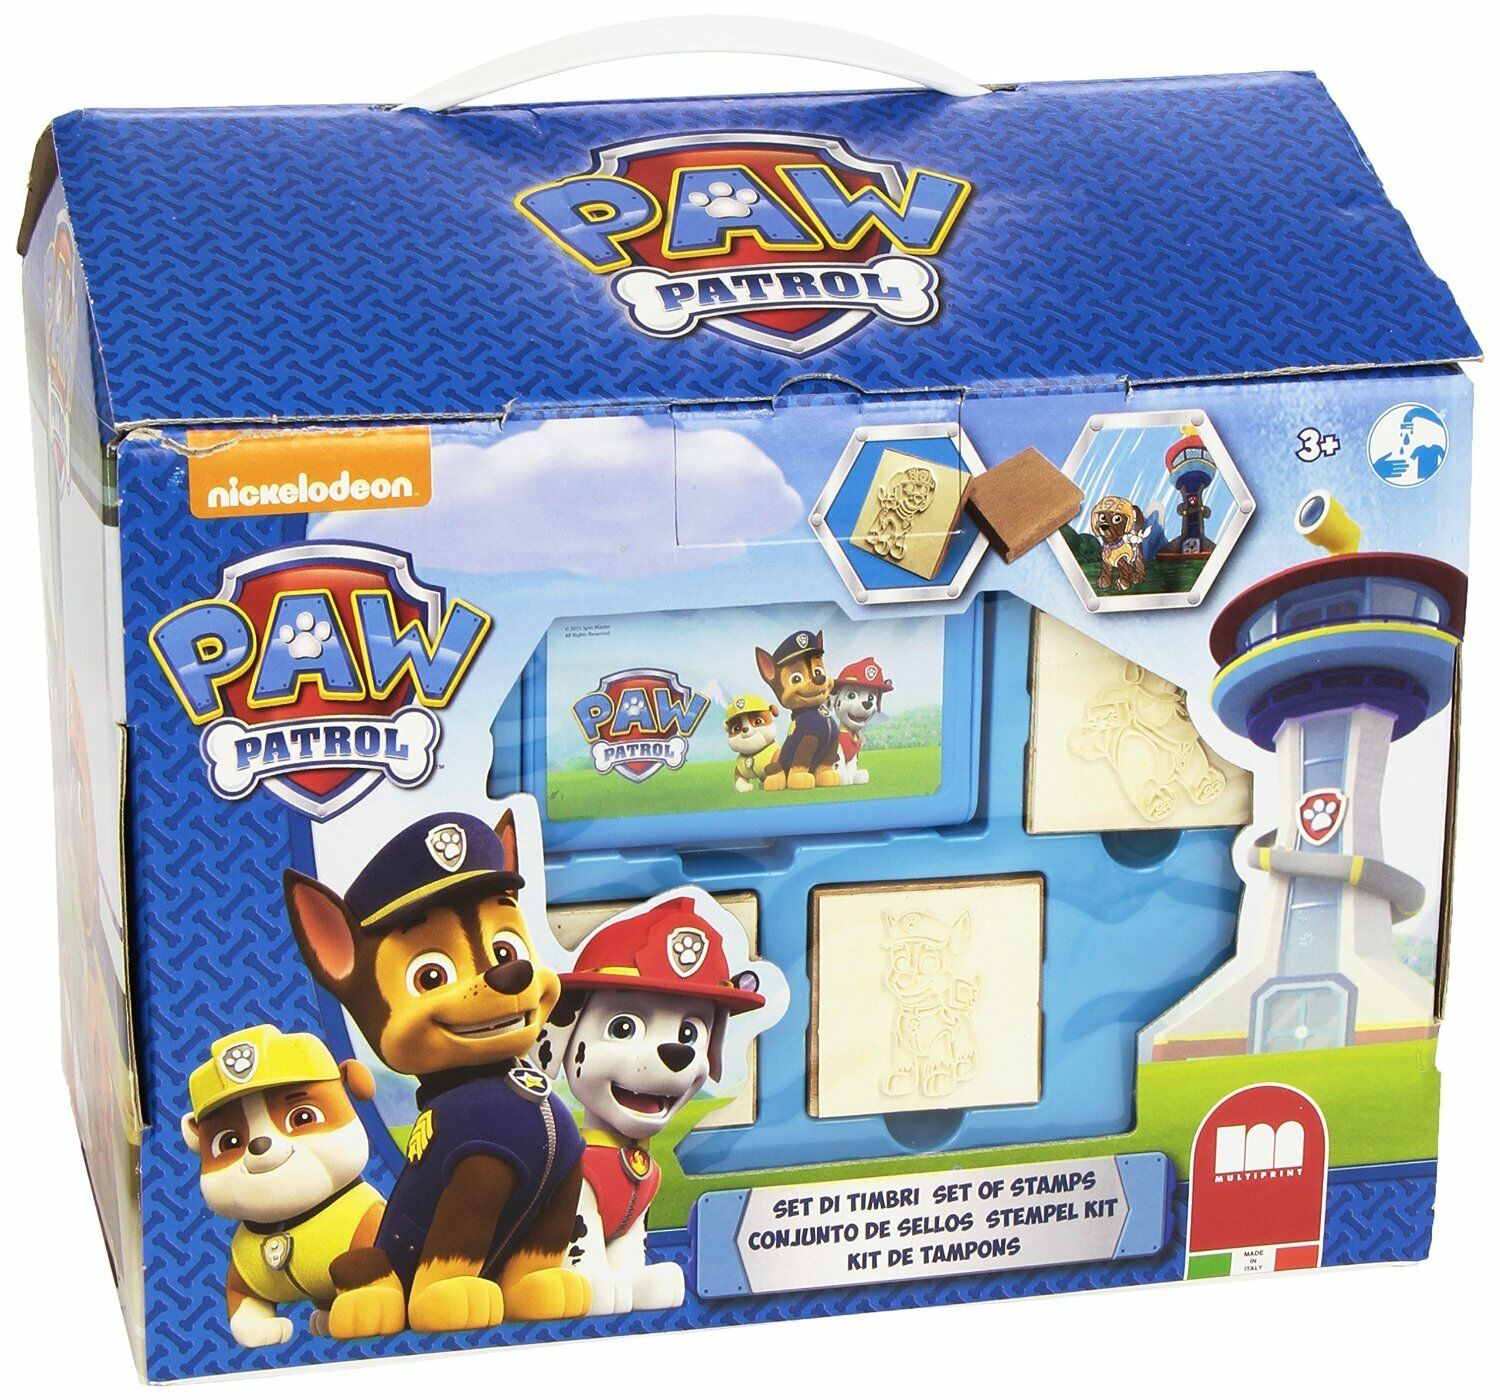 Chest Crafts Patrol Canine Paw Patrol Home Fun Markers Stamps